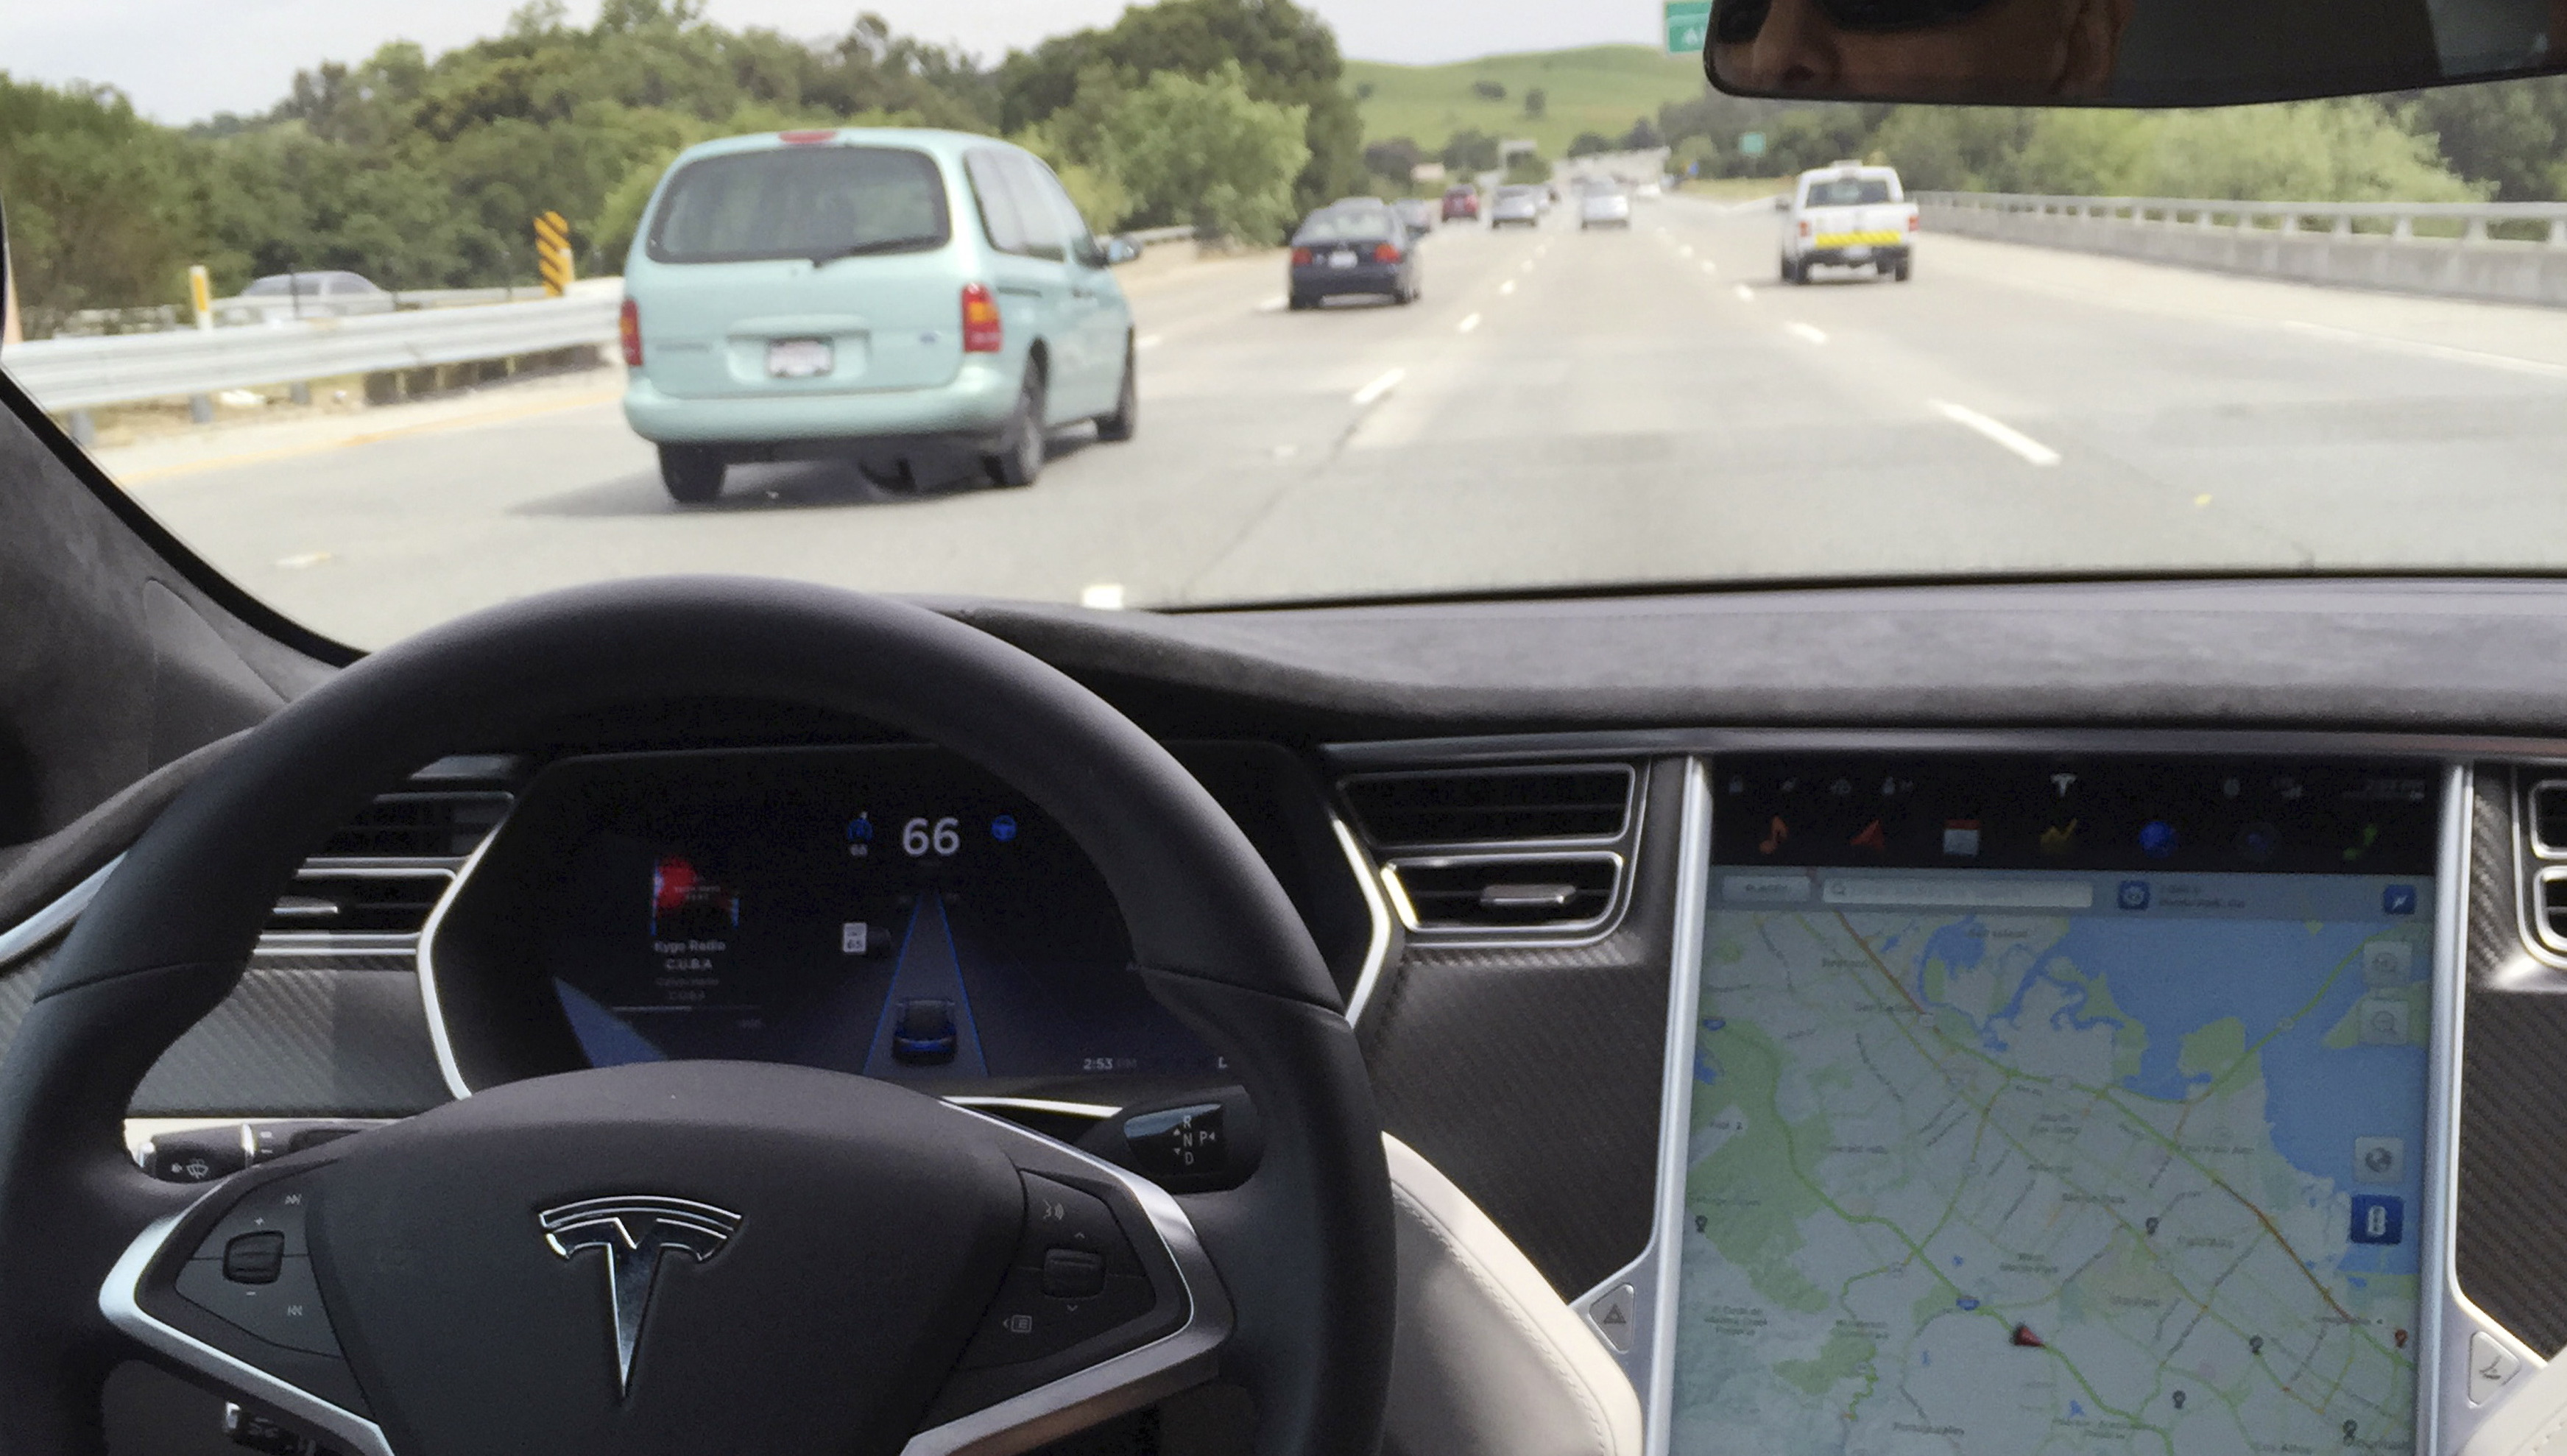 Tesla Autopilot Crash Self Driving Cars Are Watching Us And Recording Our Data Whether Or Not We Re The Road Quartz